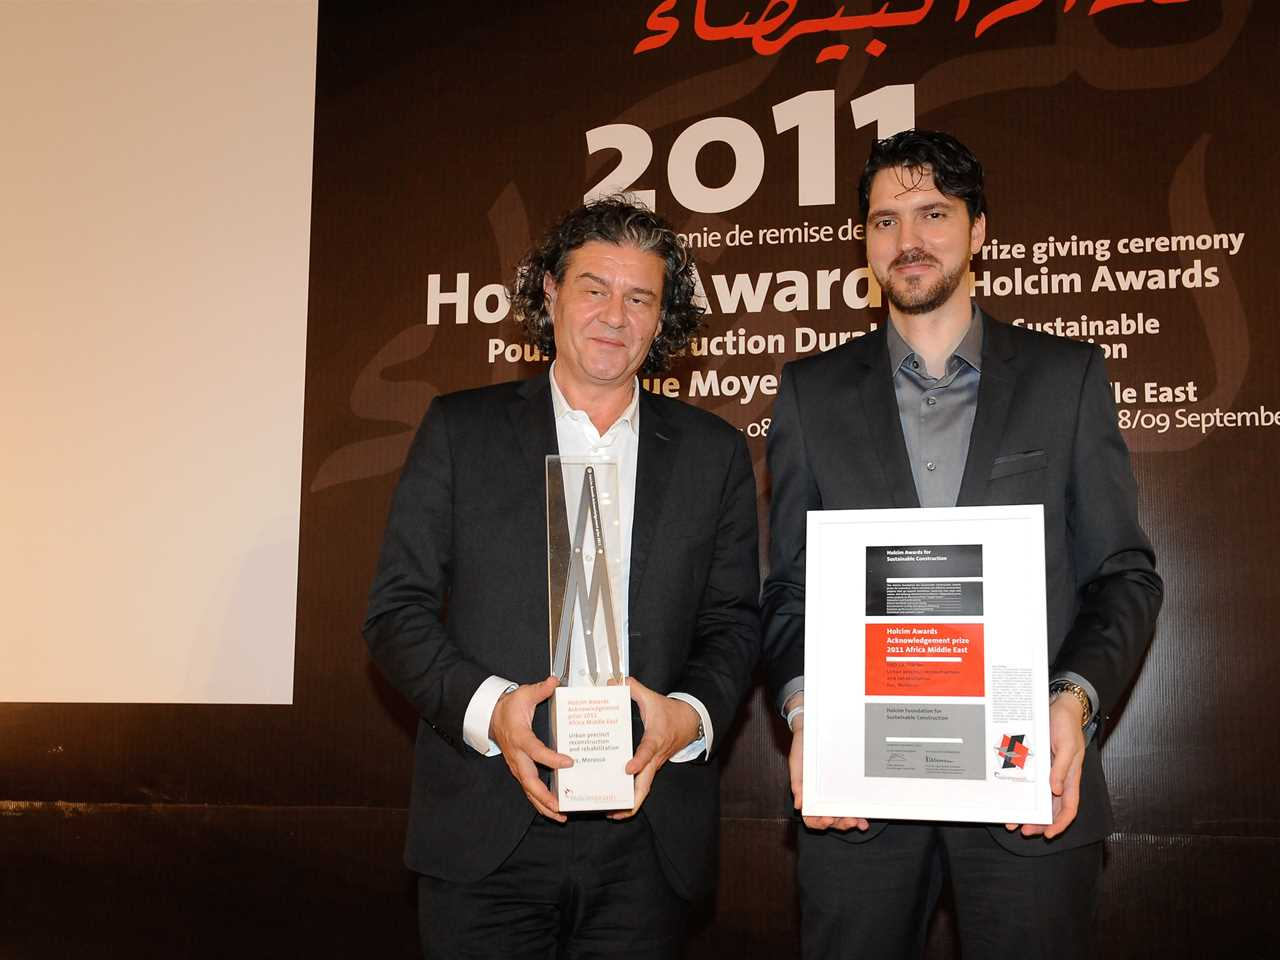 Representatives of the Holcim Awards Acknowledgement prize 2011 Africa Middle East winner 'Urban …